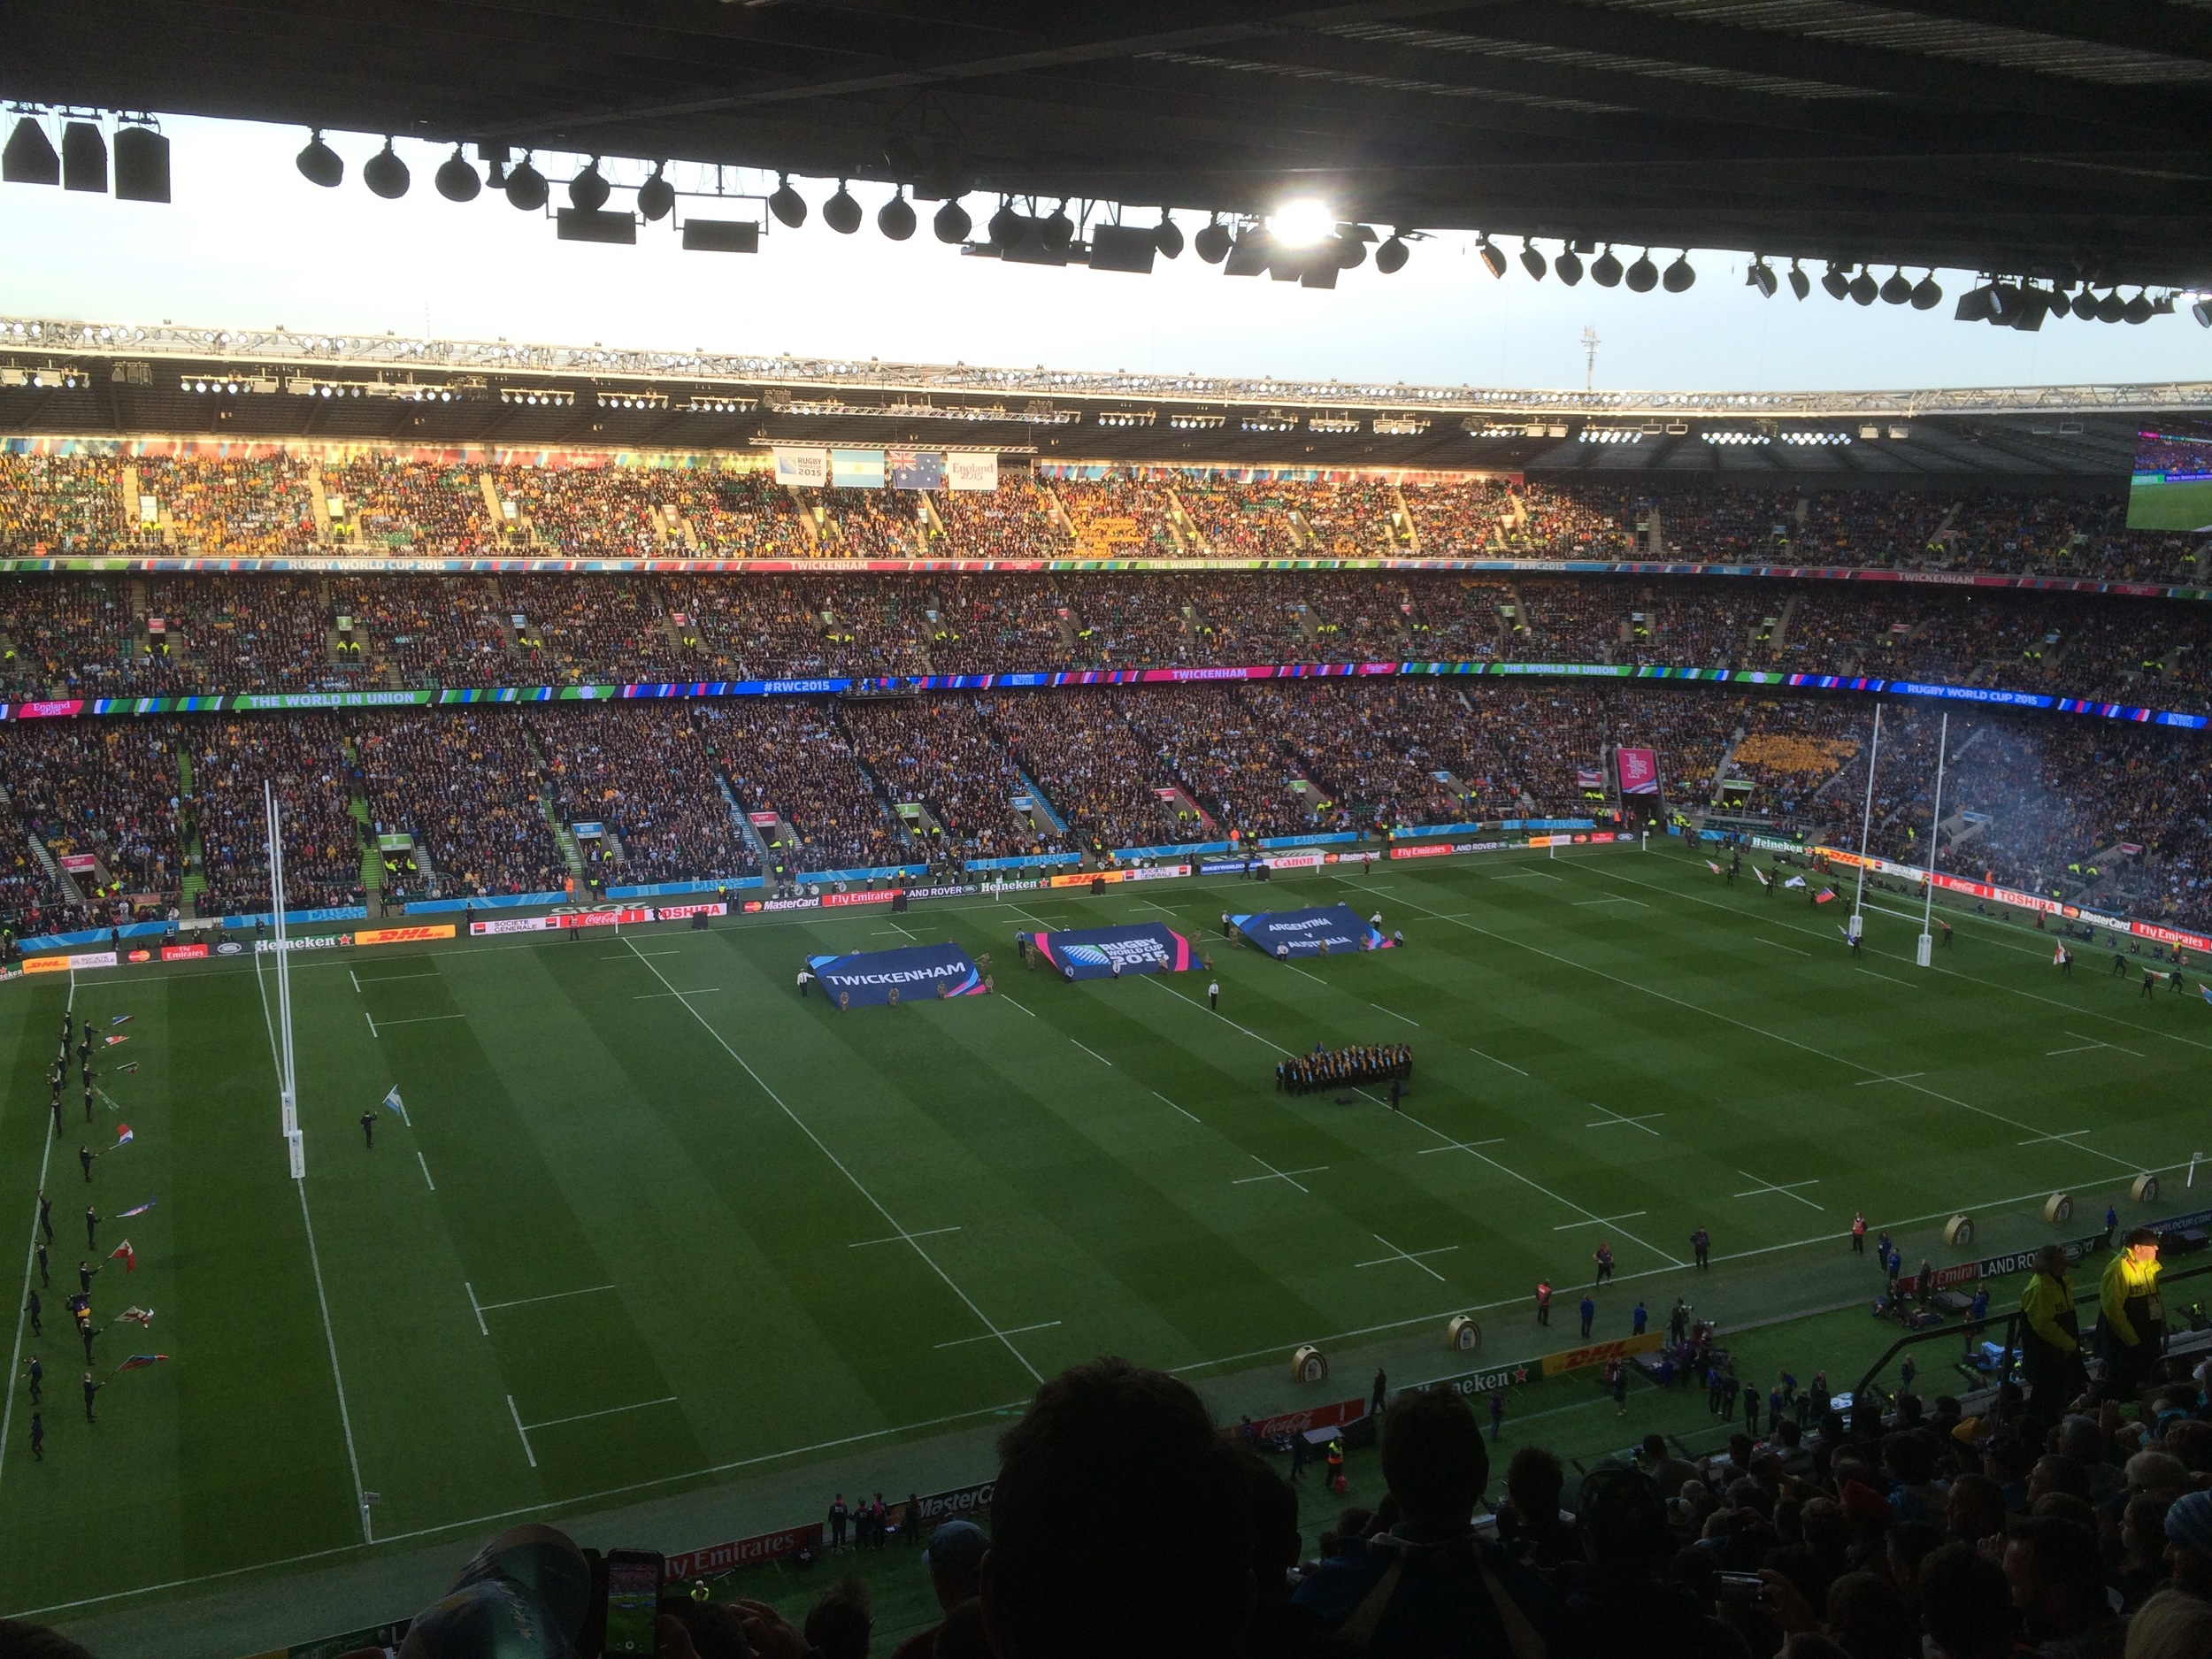 Argentina v Australia Semi Final - all about the rugby